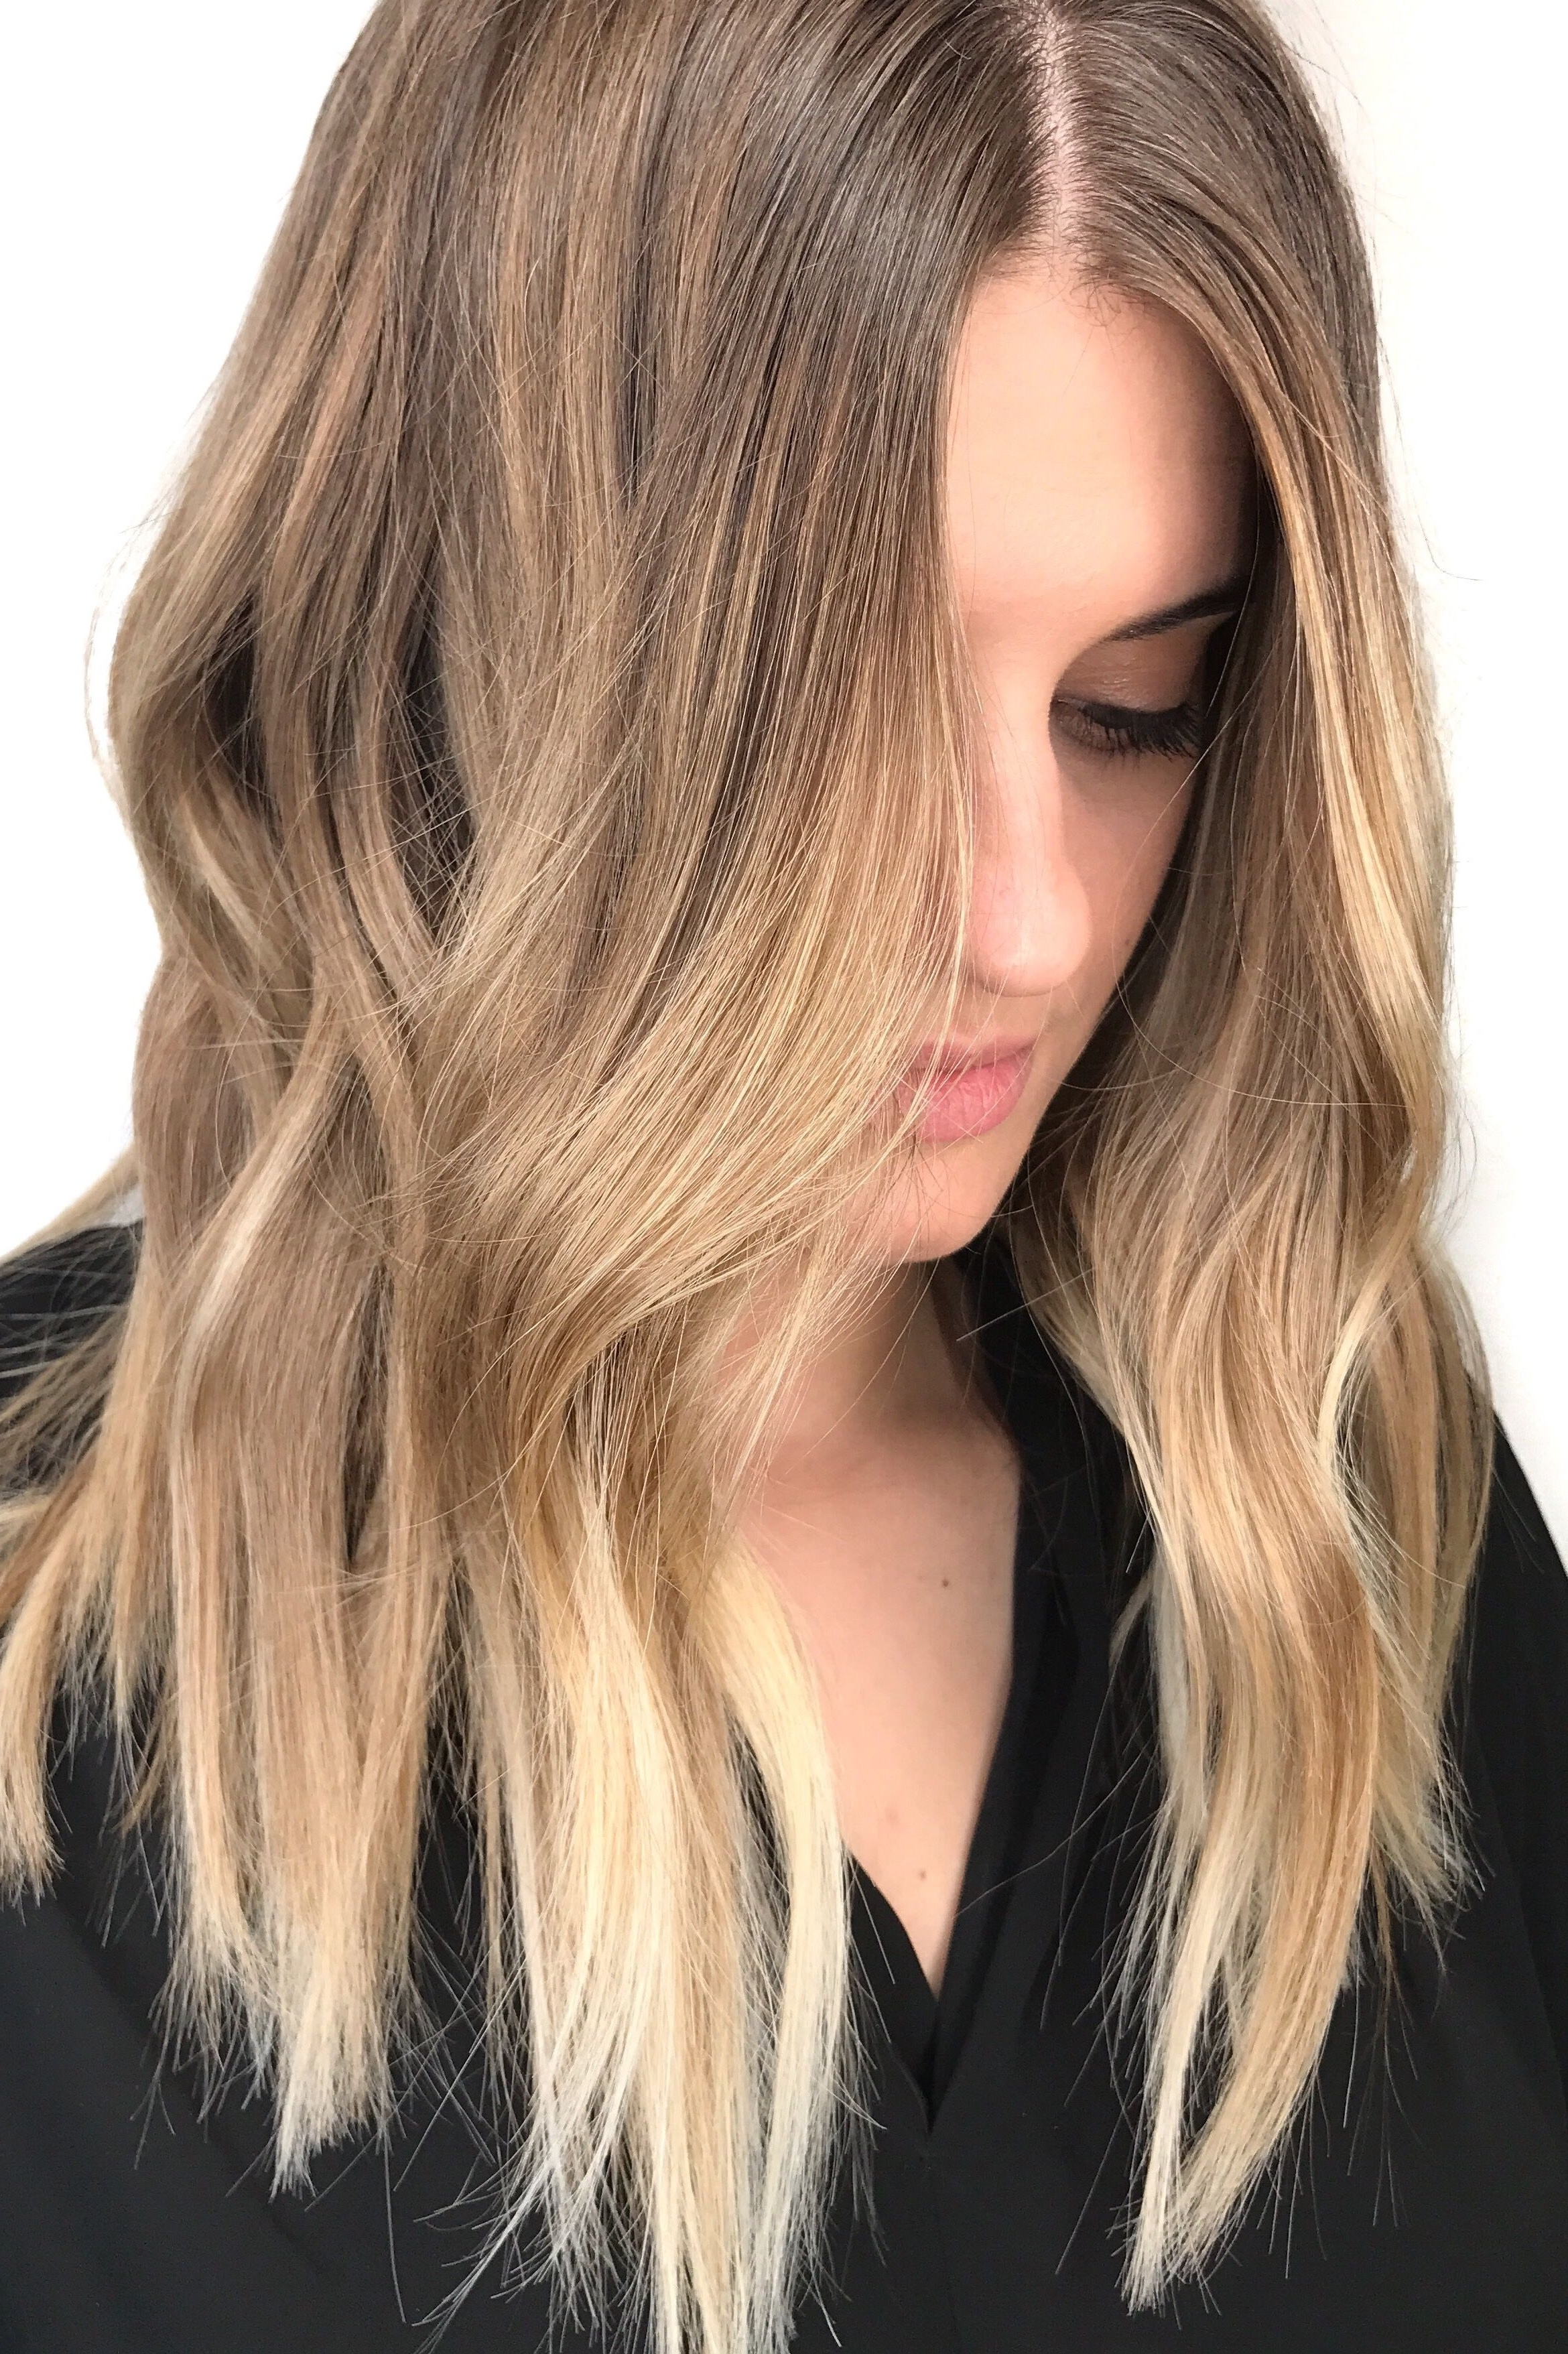 Most Popular Sunkissed Long Locks Blonde Hairstyles With Regard To Blonde Balayage ; Natural Blonde Highlights ; Sun Kissed Hair Color (Gallery 8 of 20)